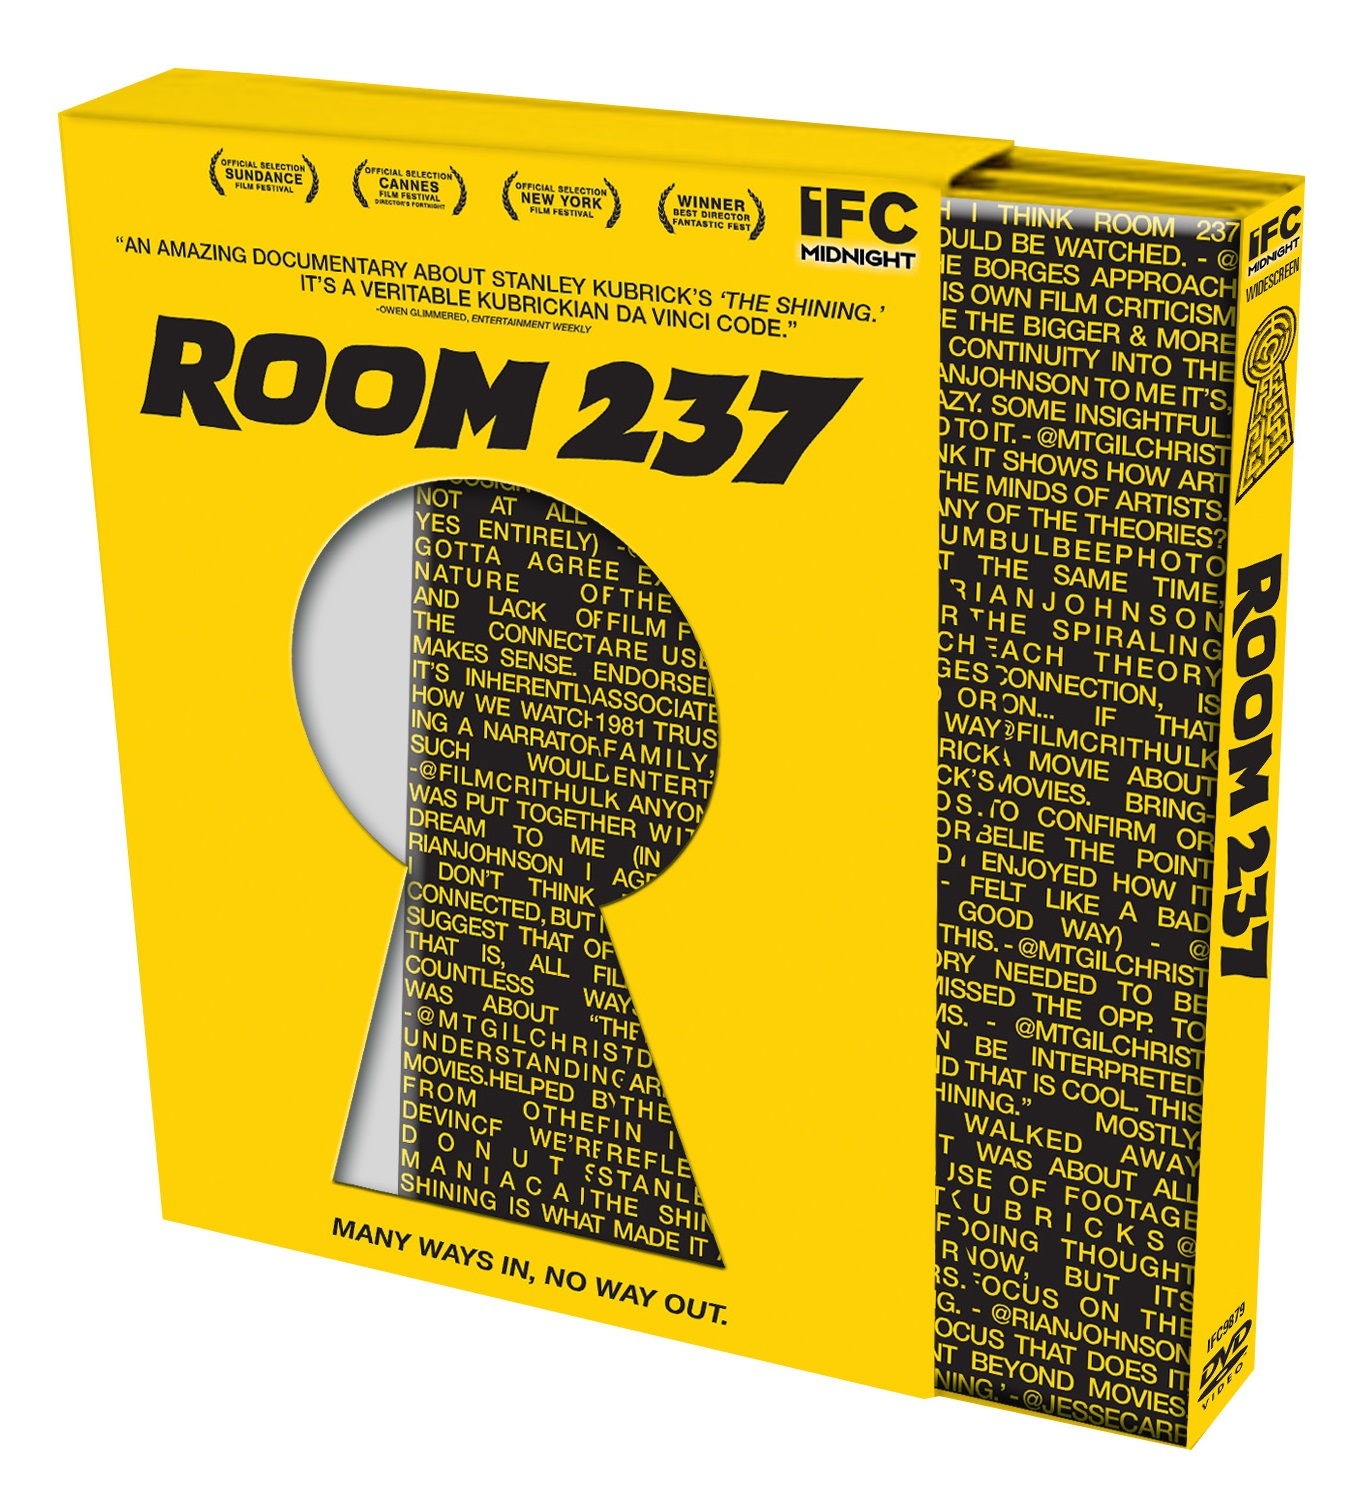 Read the Twitter Discussion That Became the DVD Cover for 'Room 237'